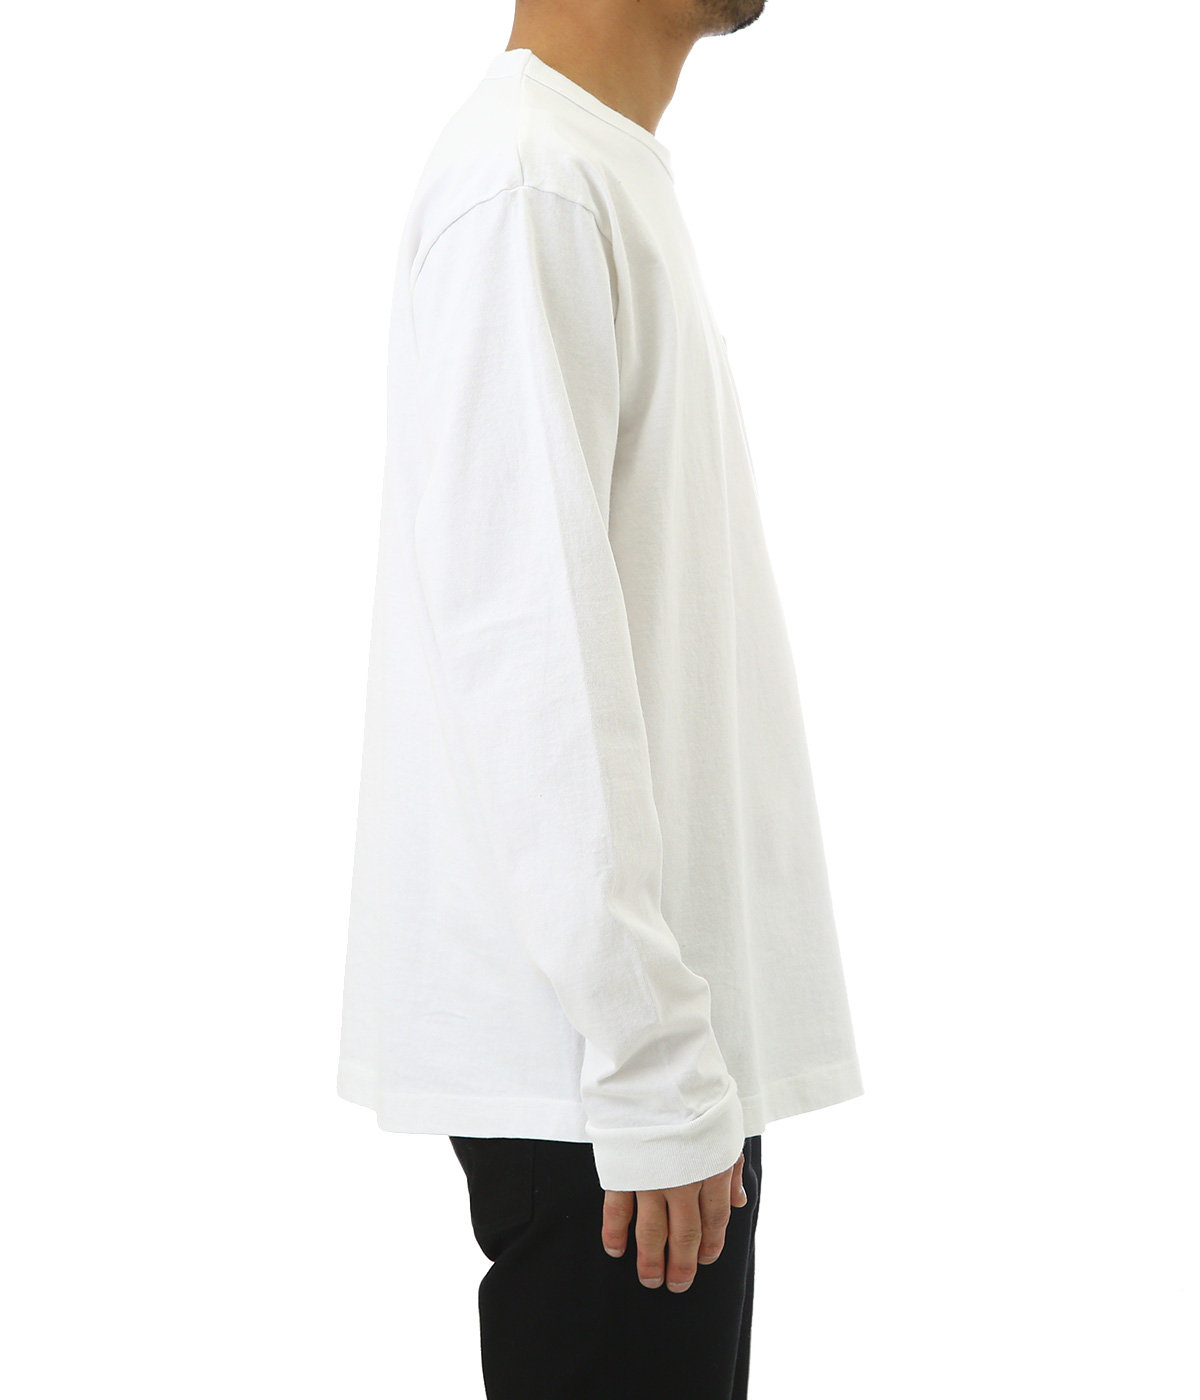 LONG SLEEVE TEE SHIRT / T-1011